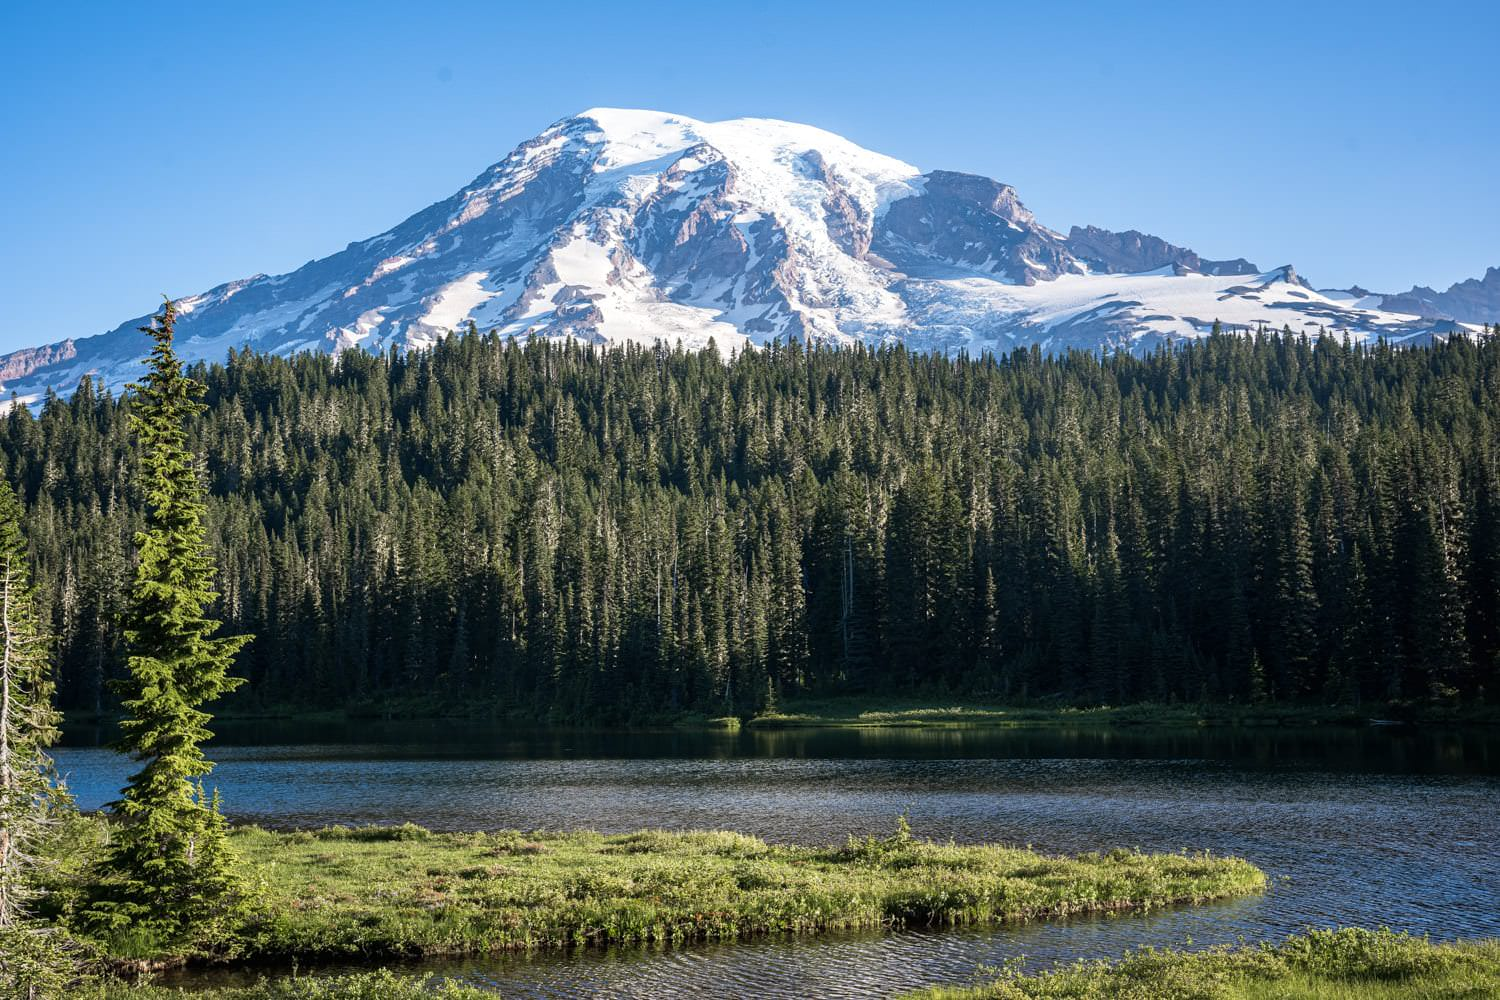 Mount Rainier Sunrise Elopement Packages